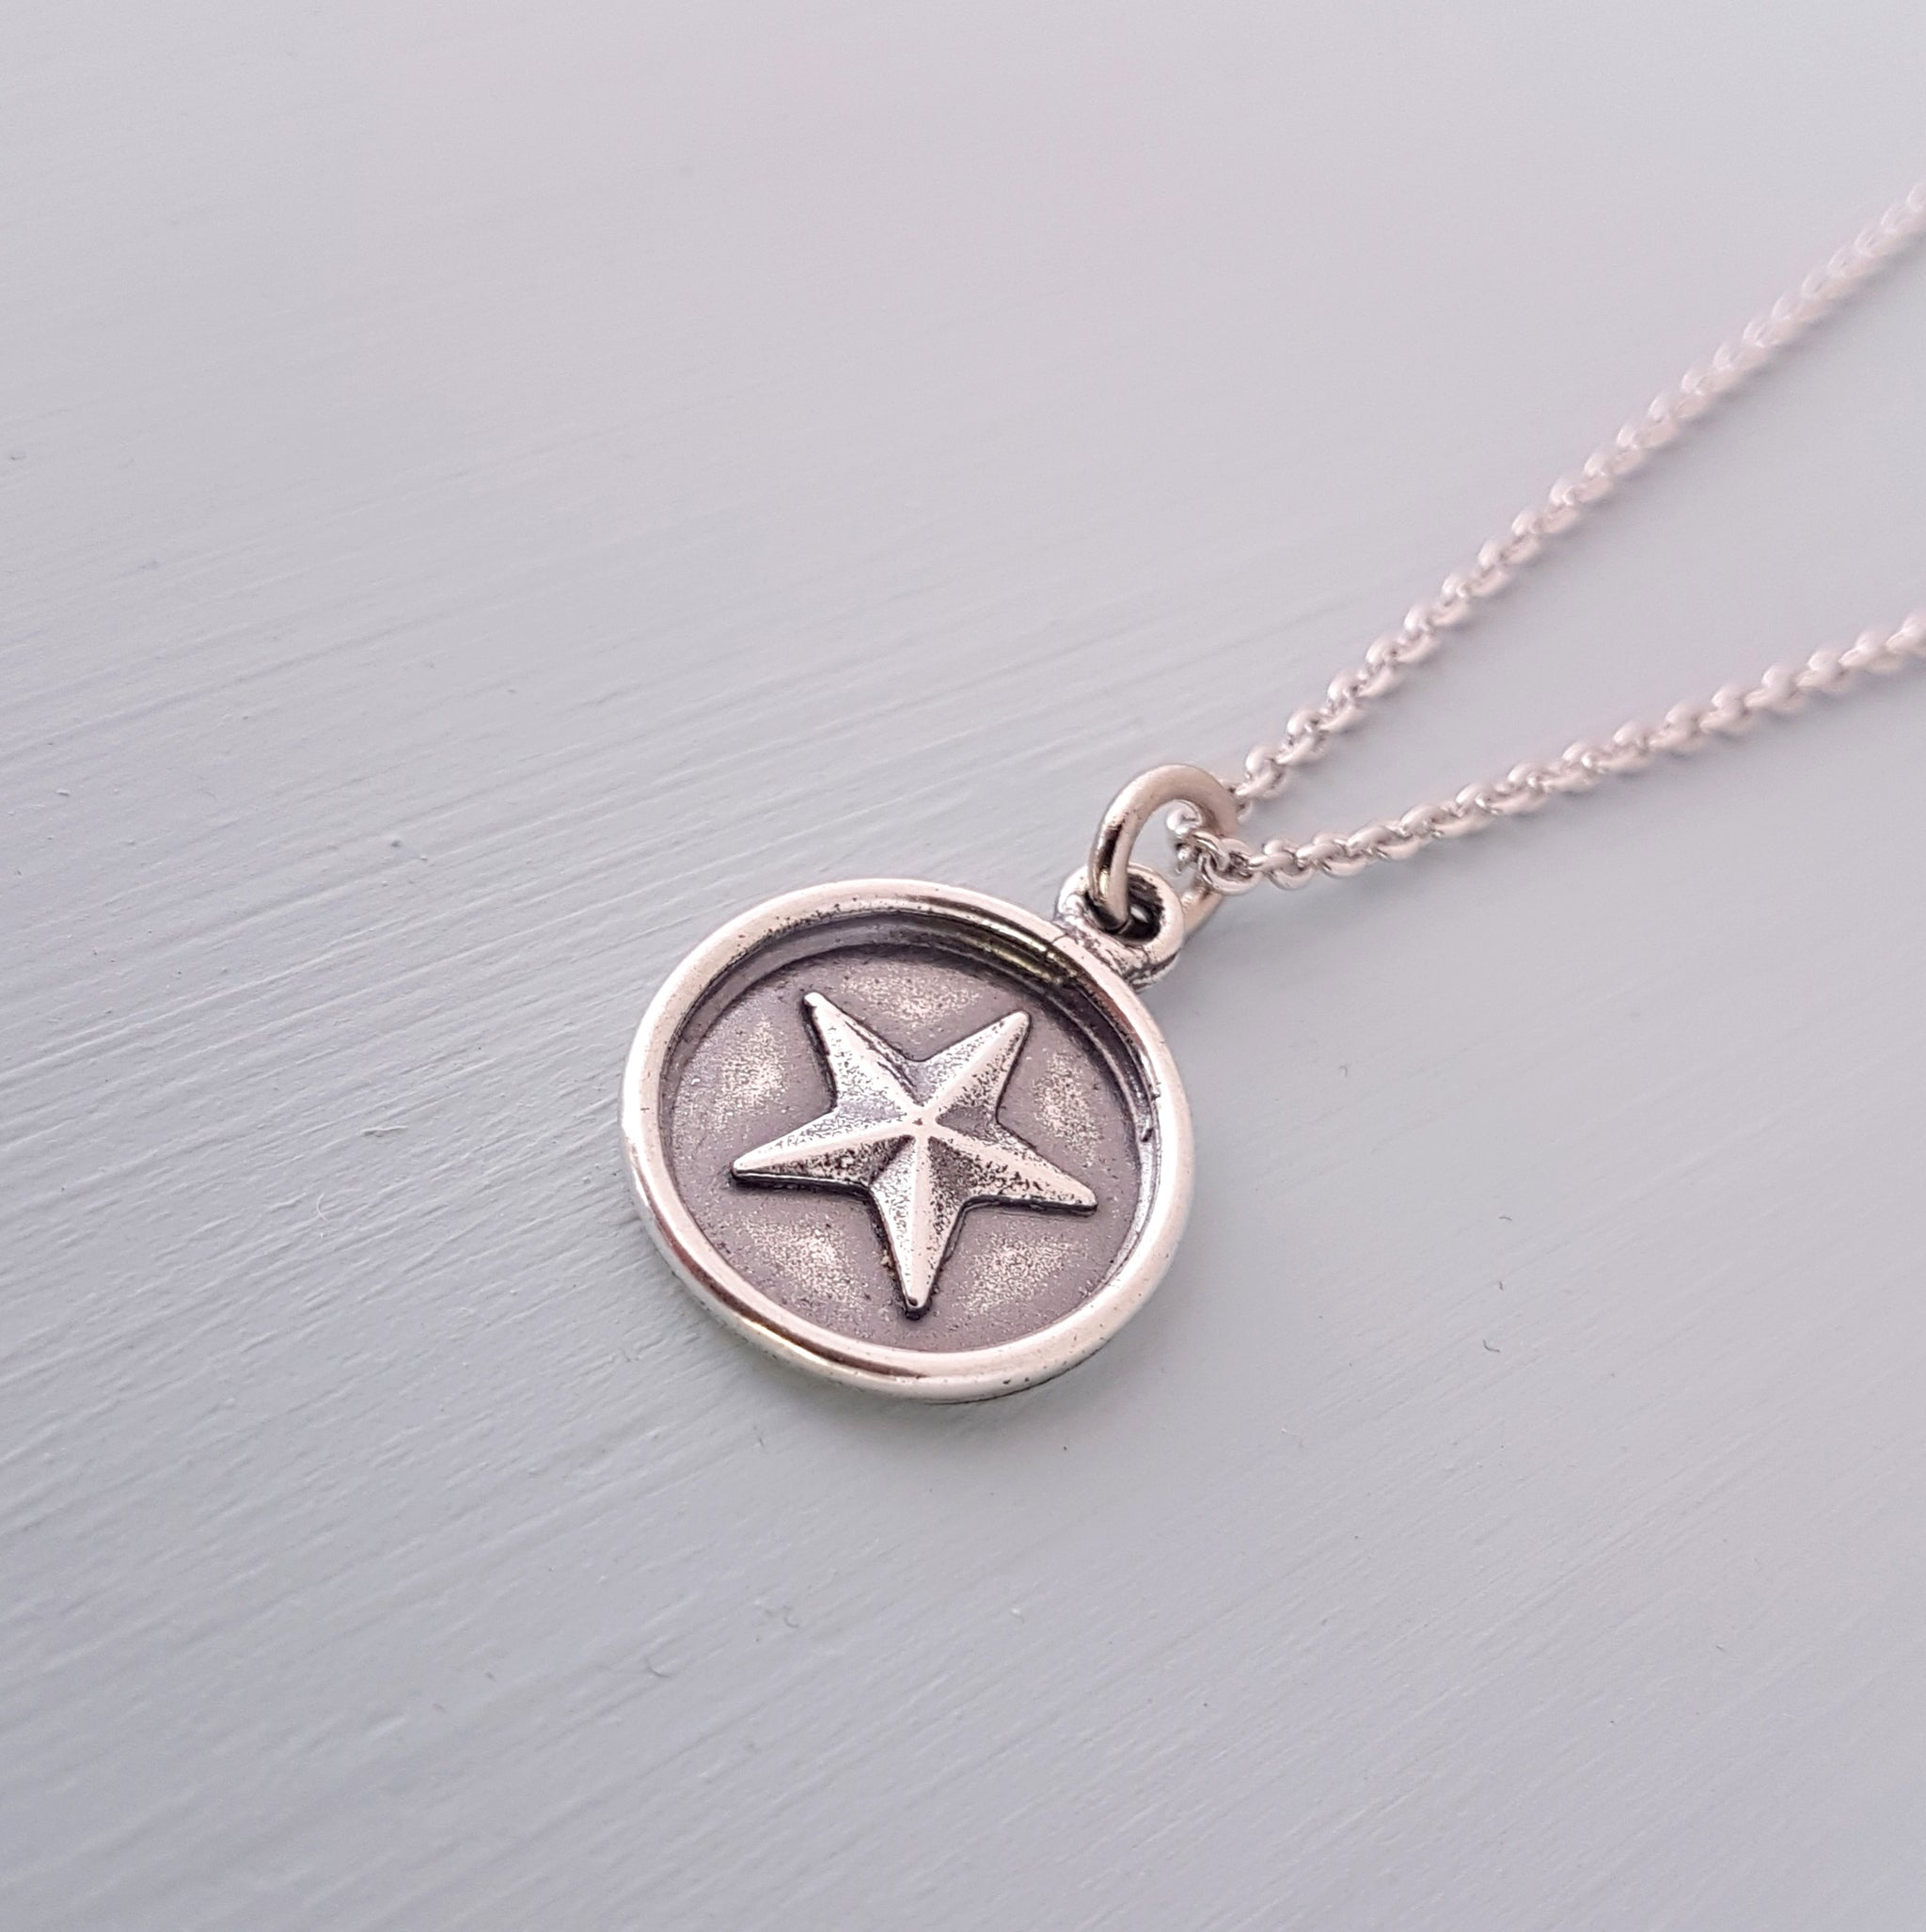 Wax Seal Star Necklace - Gwen Delicious Jewelry Designs